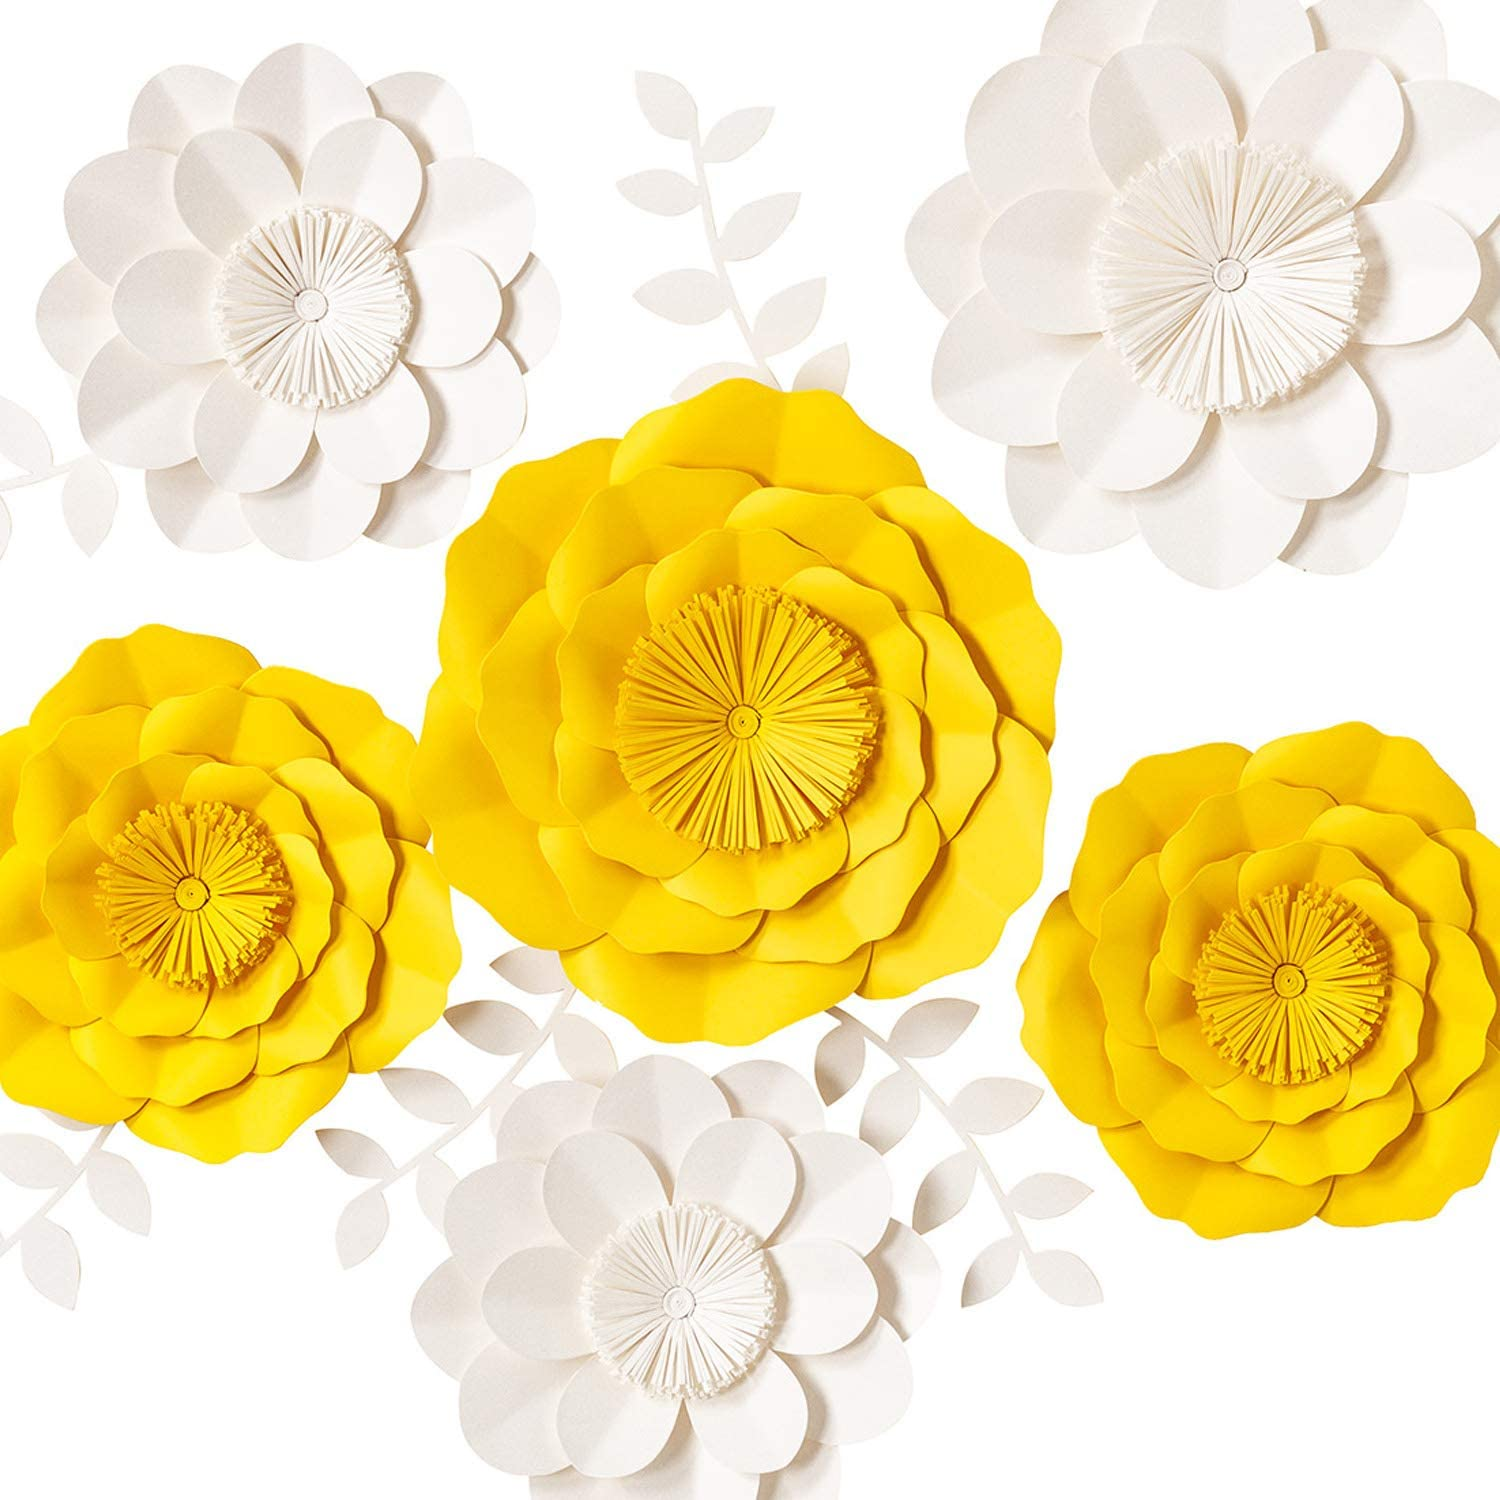 KEY SPRING 3D Paper Flower Decorations, Giant Paper Flowers, Large Handcrafted Paper Flowers (Yellow, White Set of 6) for Wedding Backdrop, Bridal Shower, Table Centerpieces, Nursery Wall Decor